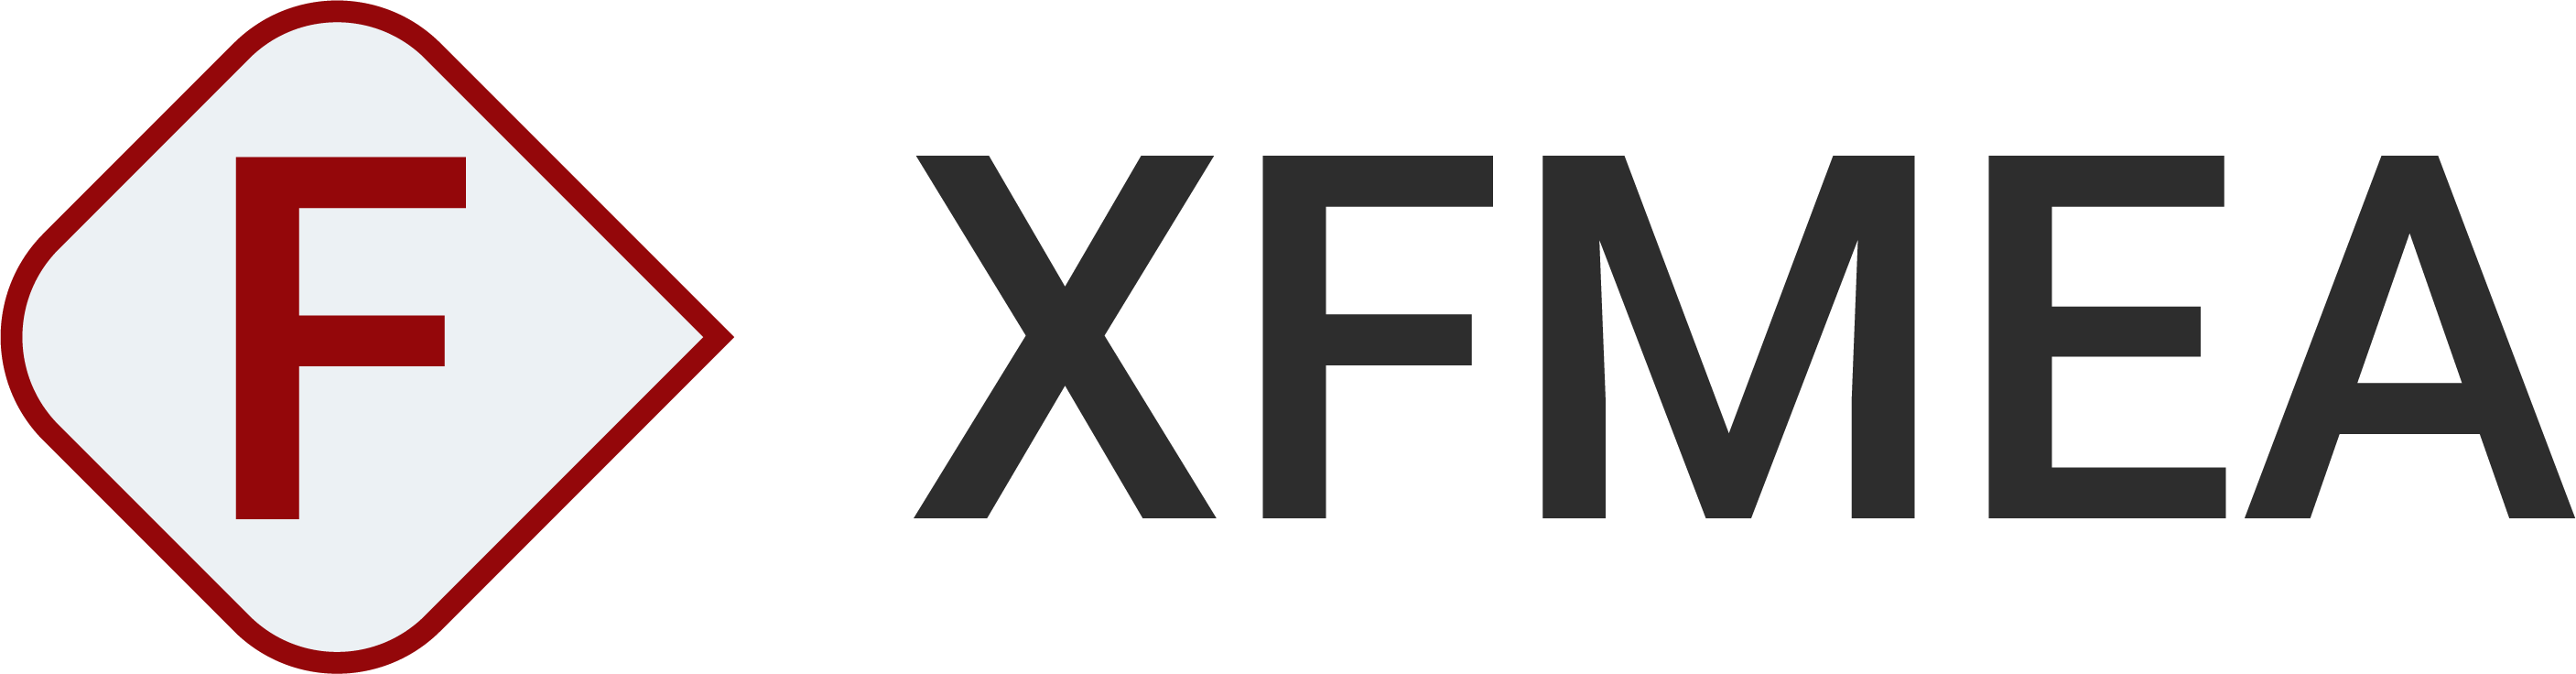 XFMEA - software for failure mode and effects analysis (FMEA) and related analyses